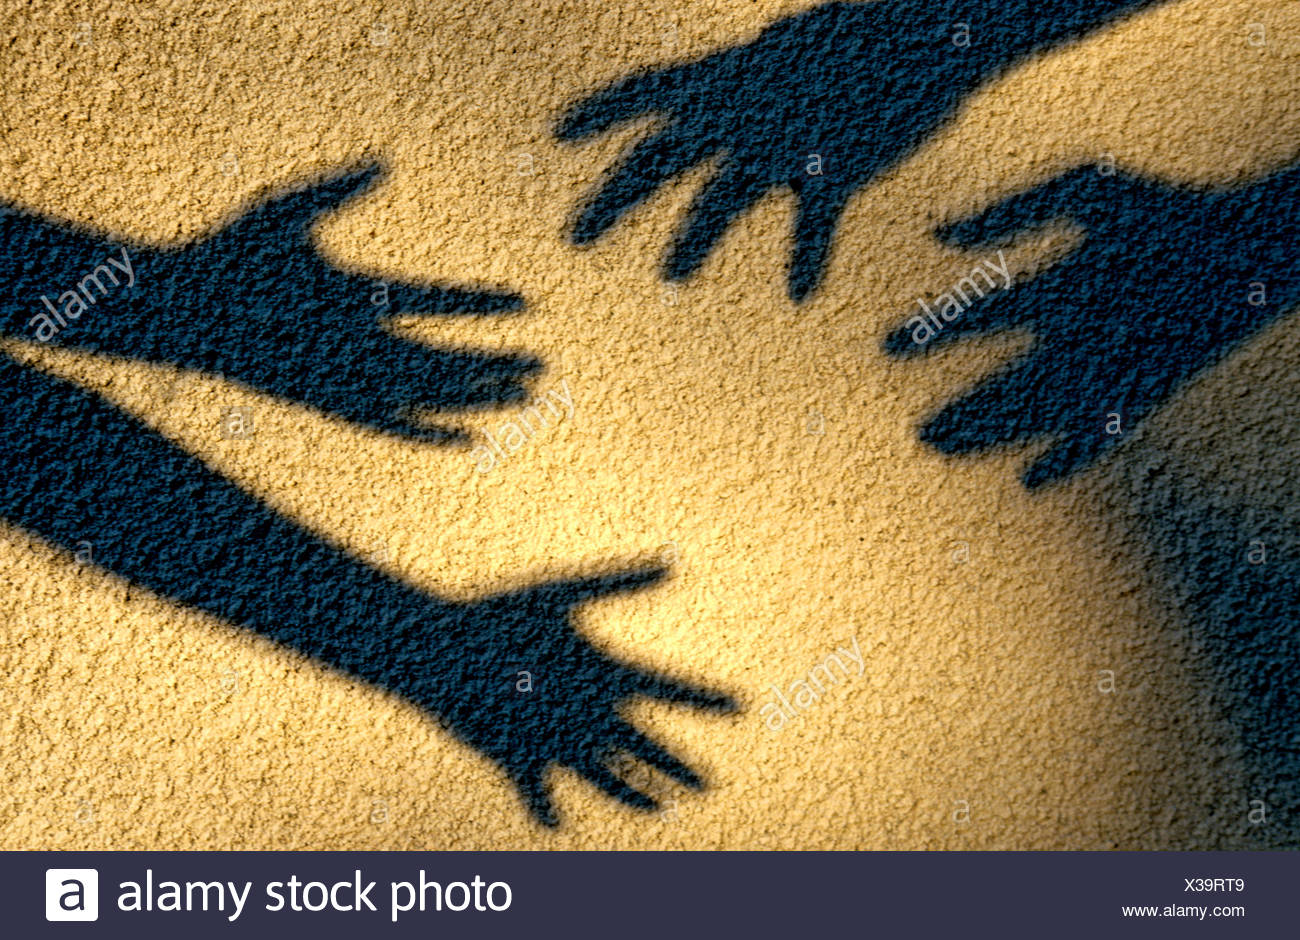 Shadows of hands reaching to touch each other - Stock Image